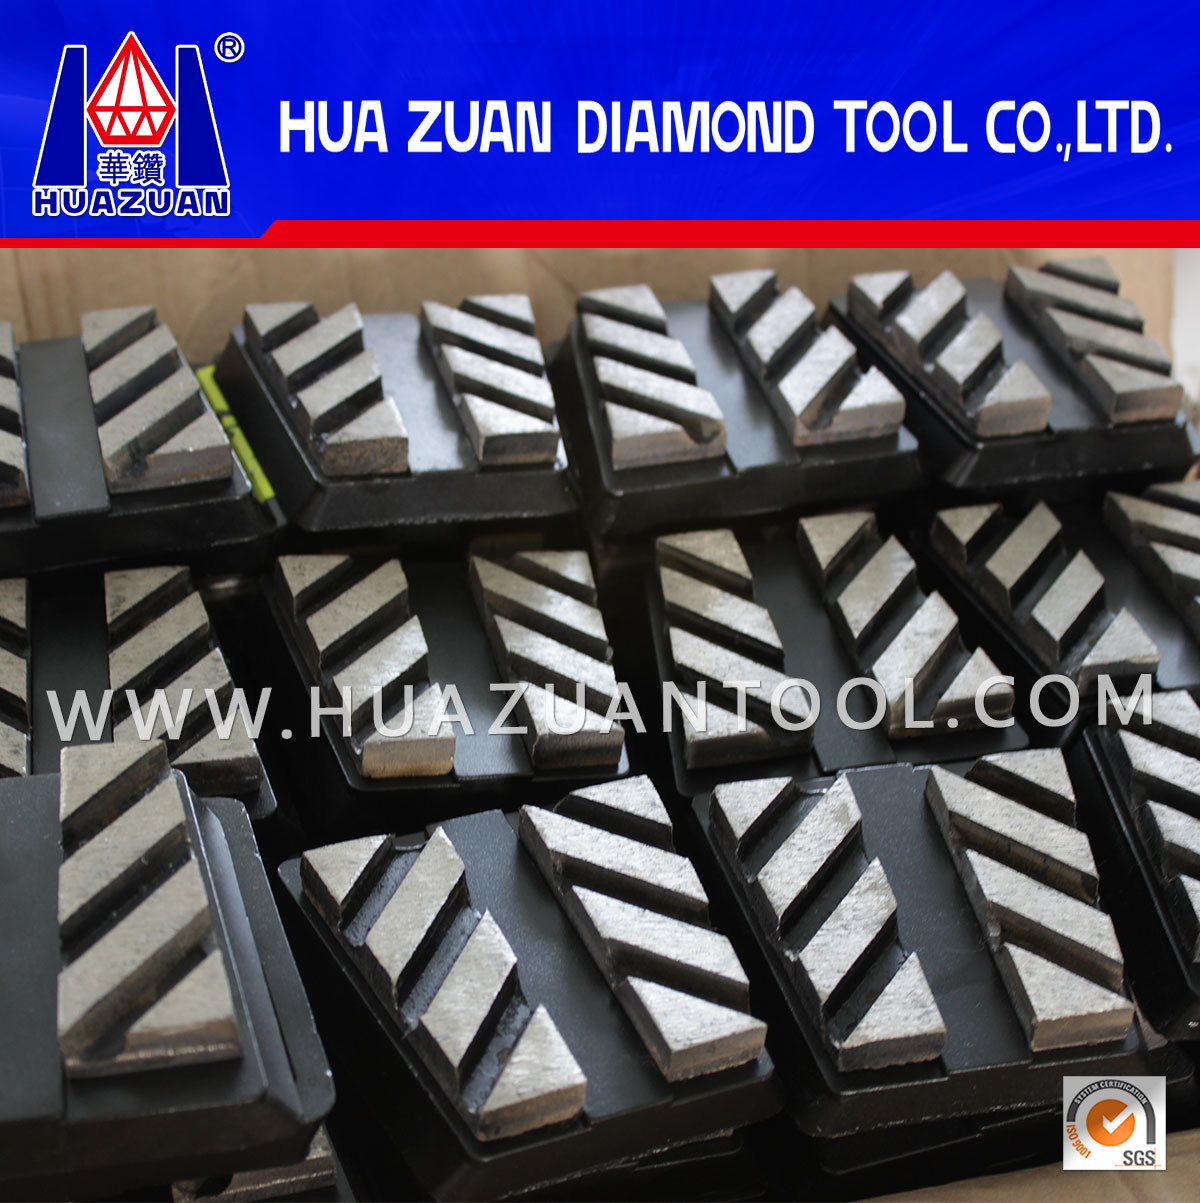 High Efficiency Diamond Frankfurt Abrasives Block for Marble